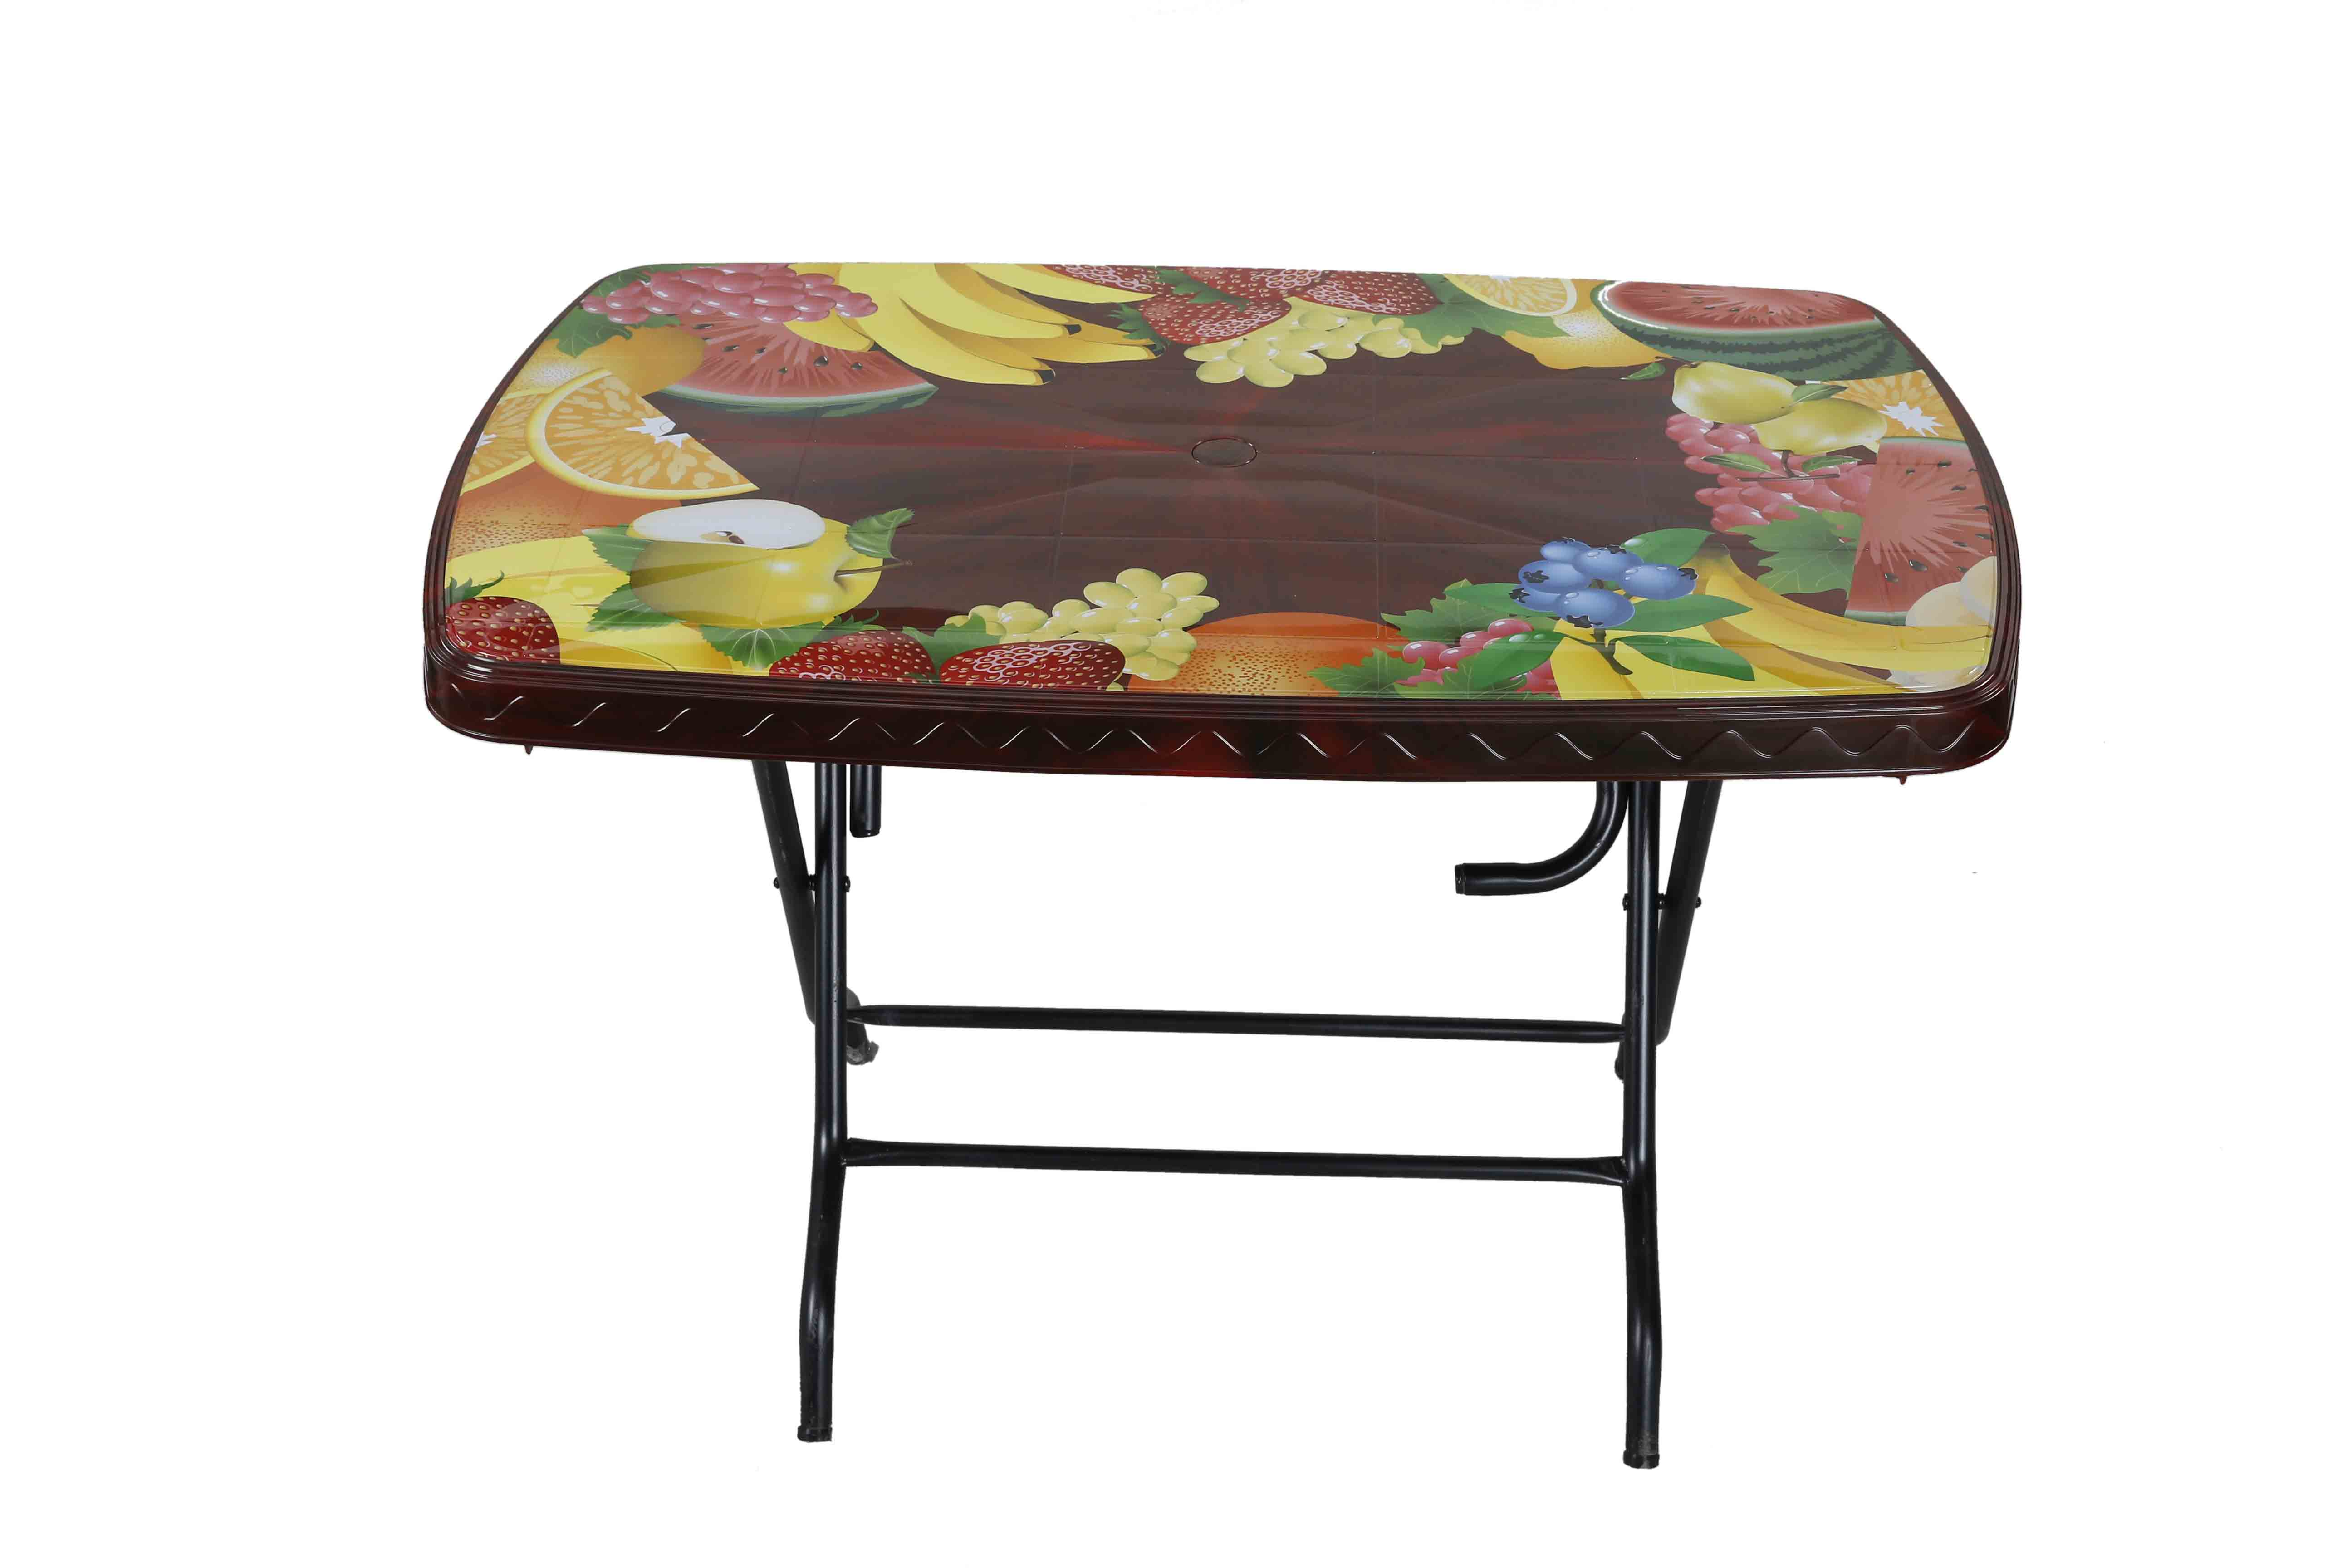 Dining Table 4 Seat Rtg S/L Print Mixed Fruit – RW